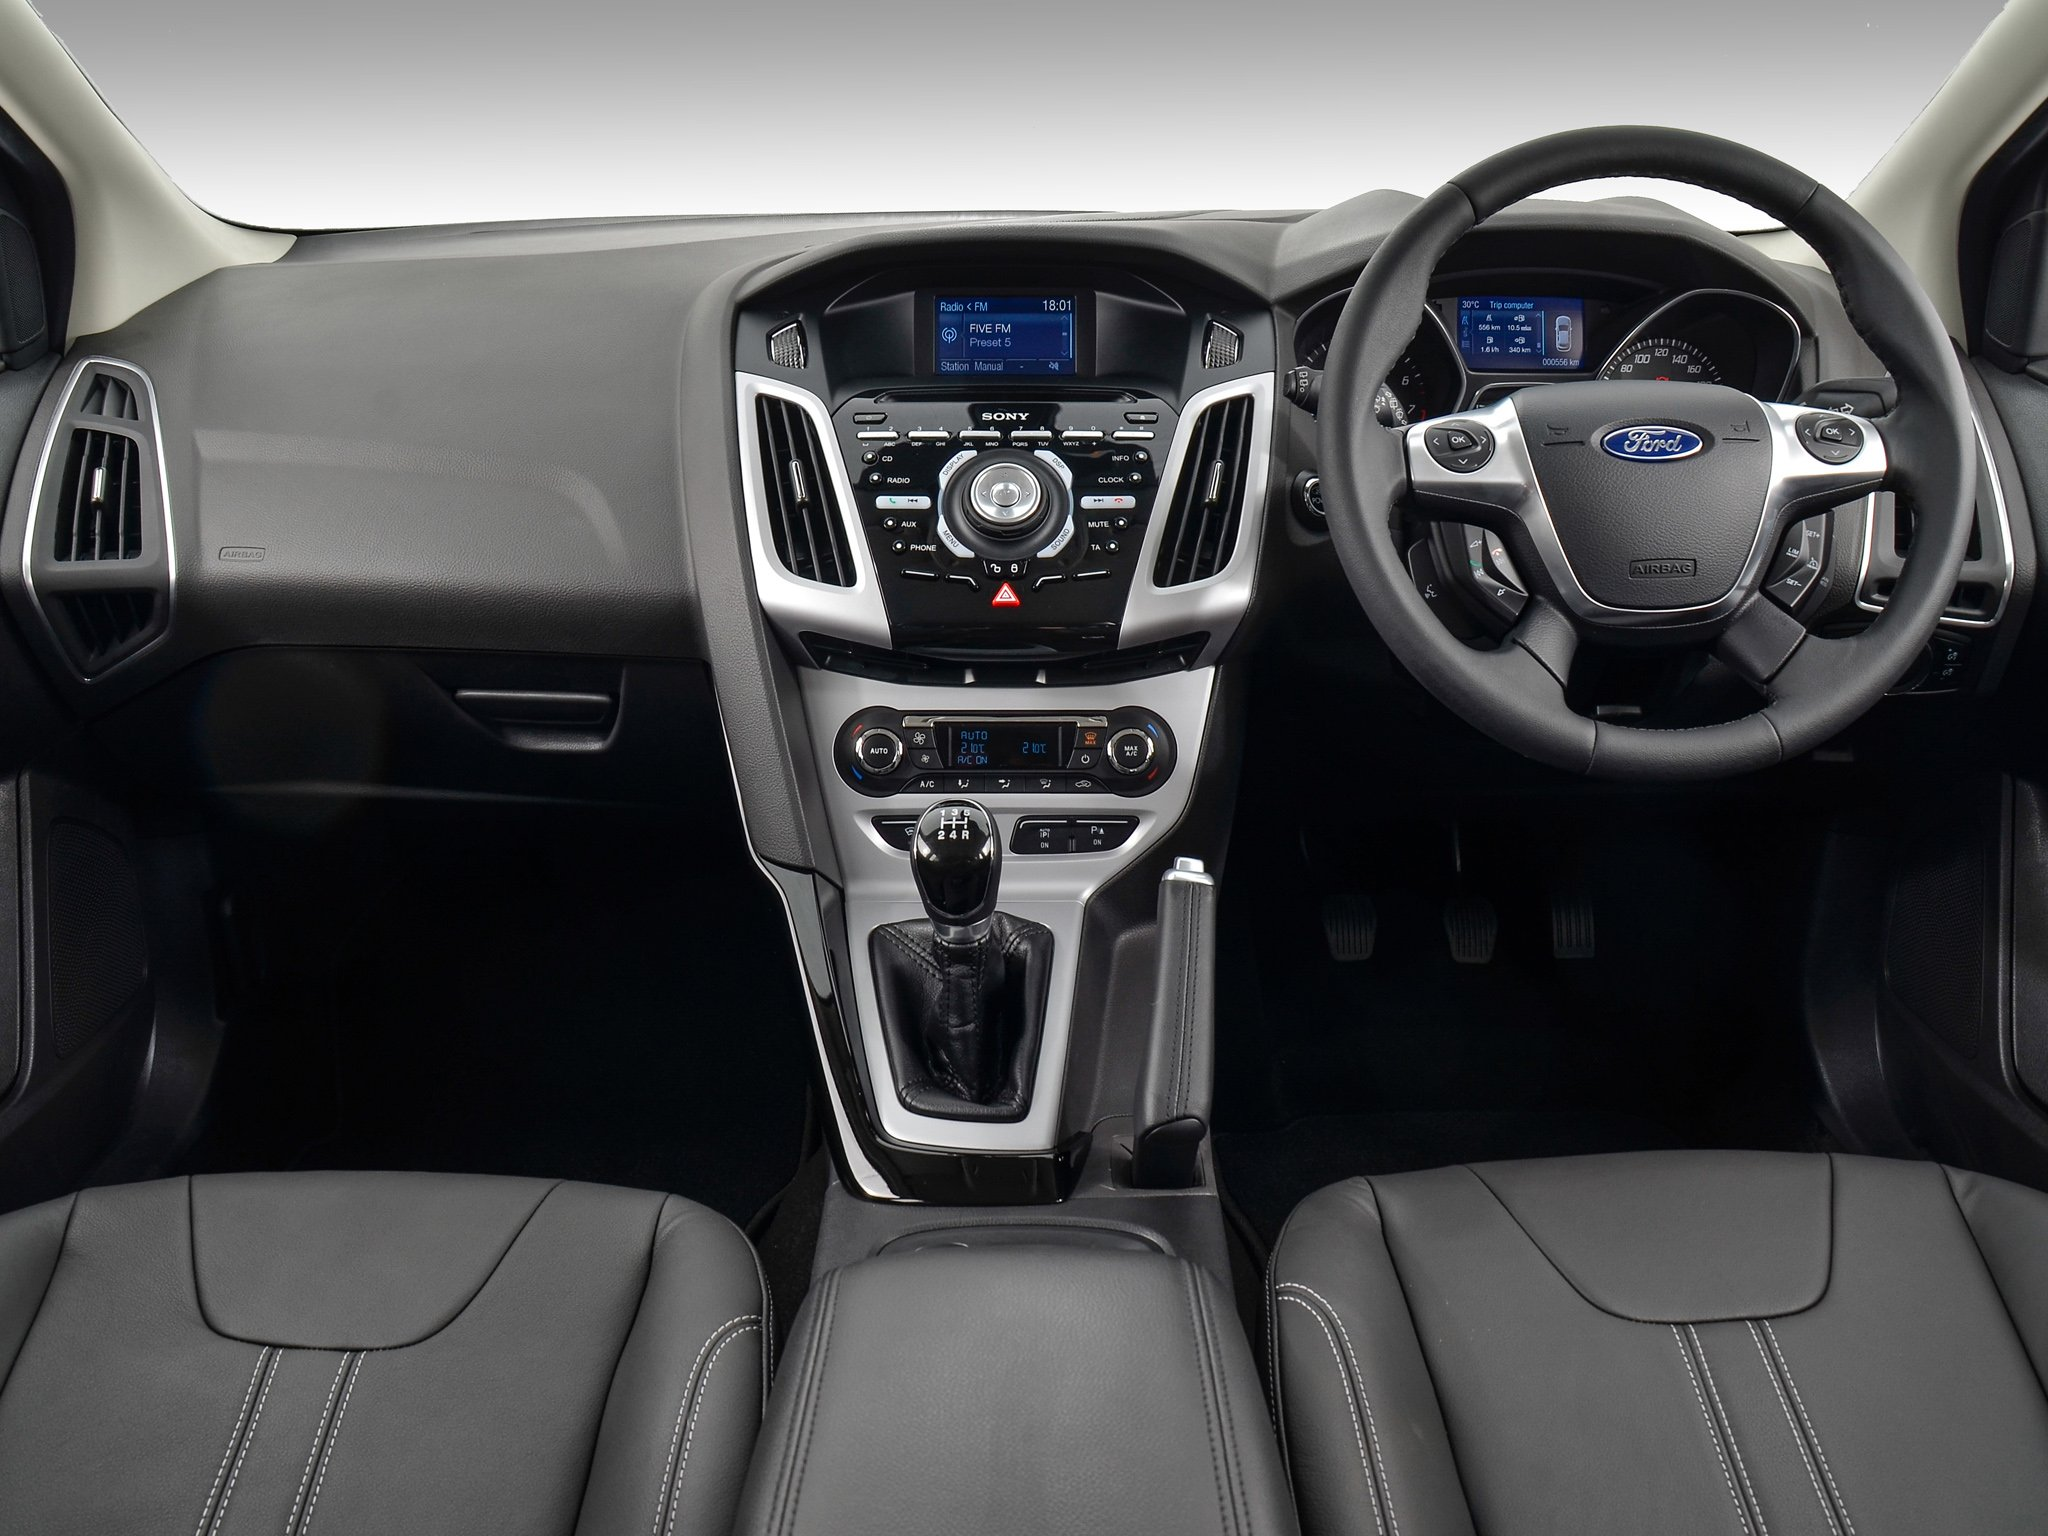 2014 Ford Focus St Interior